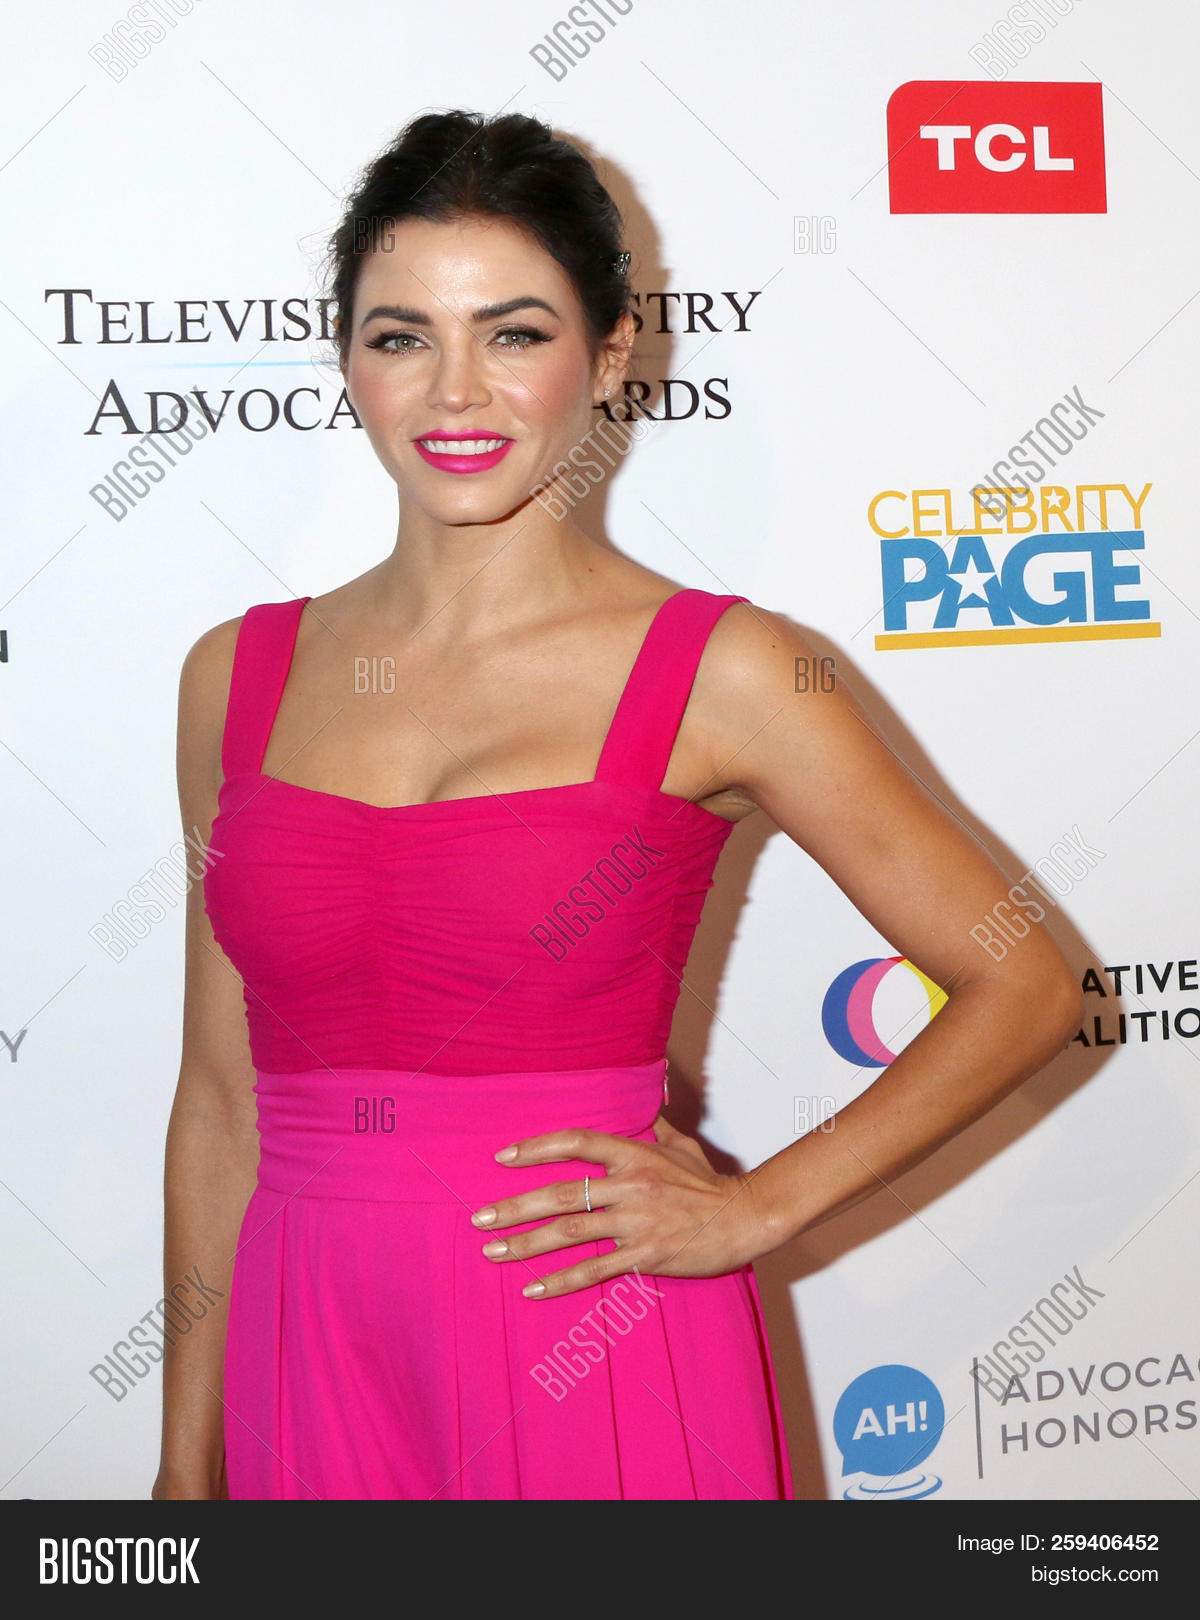 749e1ac47a1 LOS ANGELES - SEP 15: Jenna Dewan at the 2018 Television Industry Advocacy  Awards at